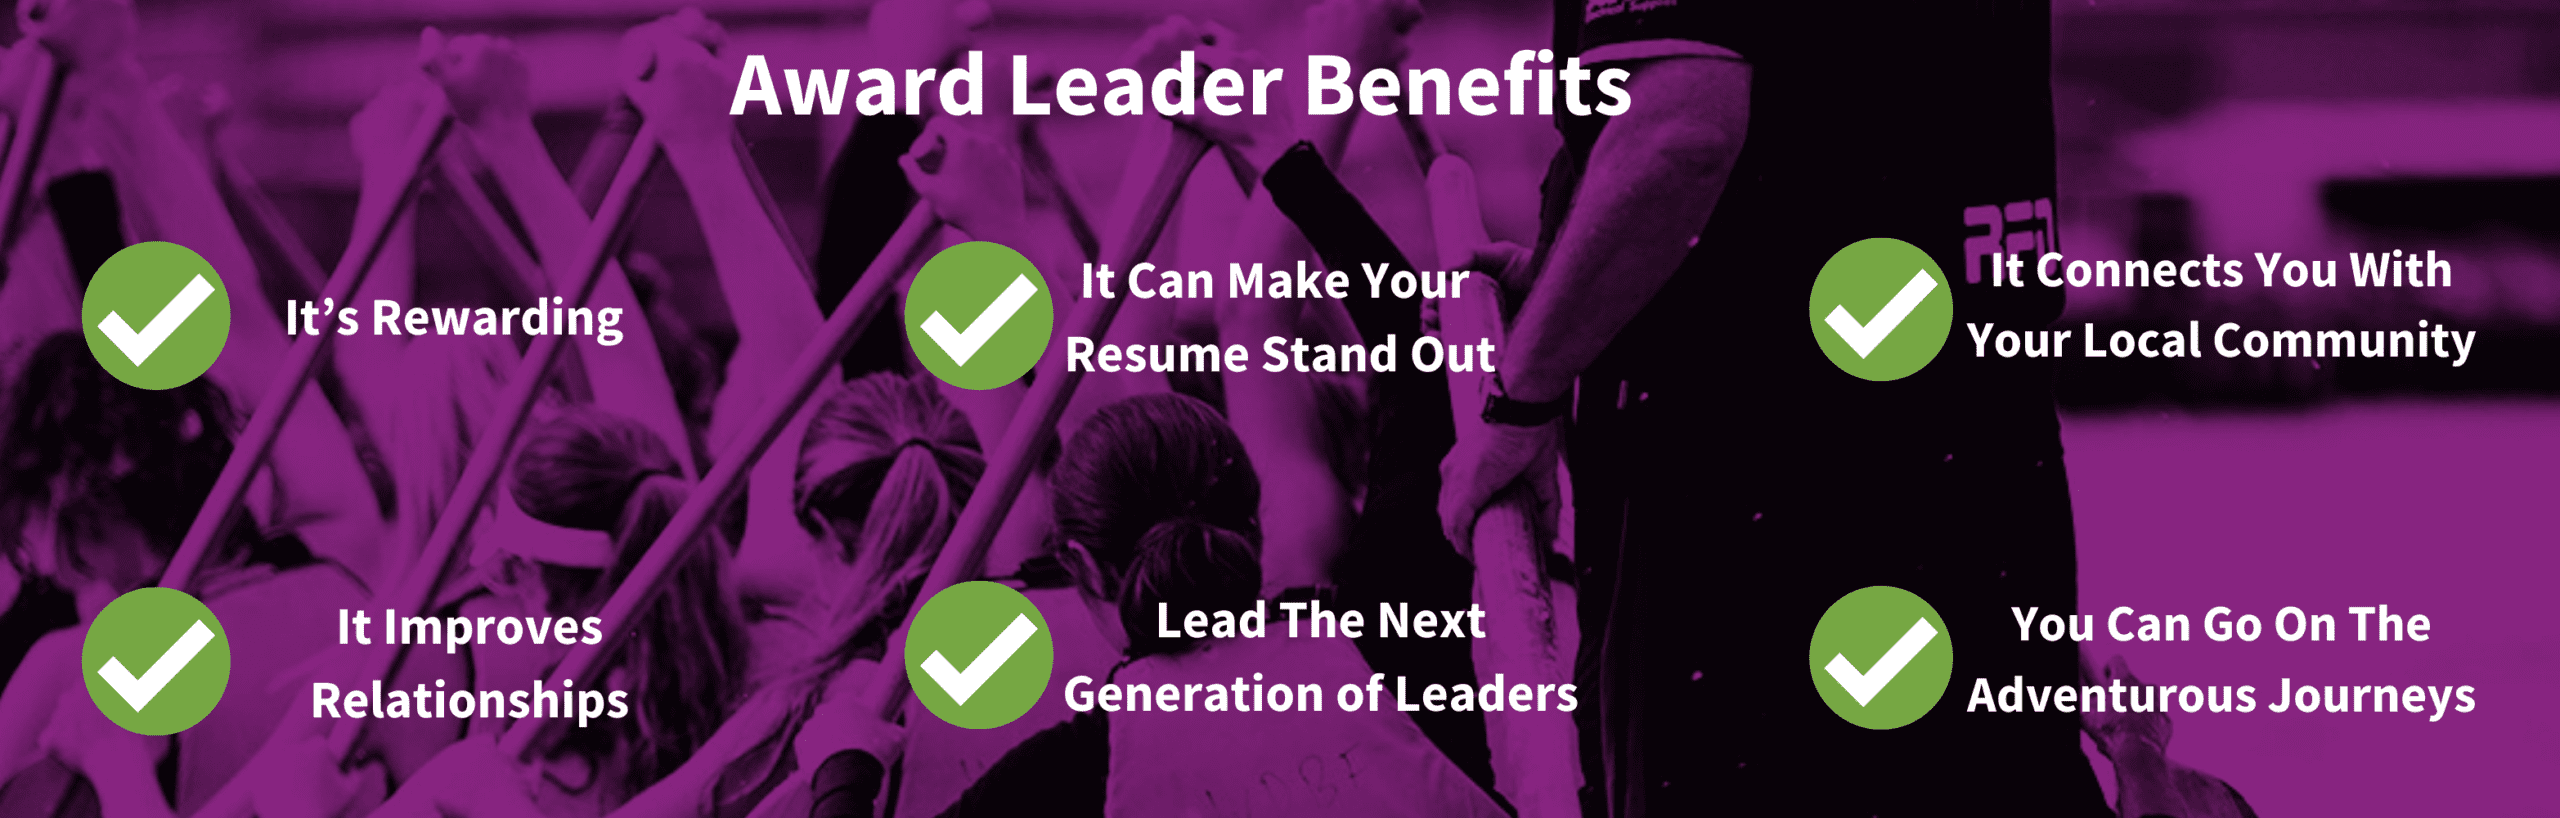 Benefits For Award Leaders